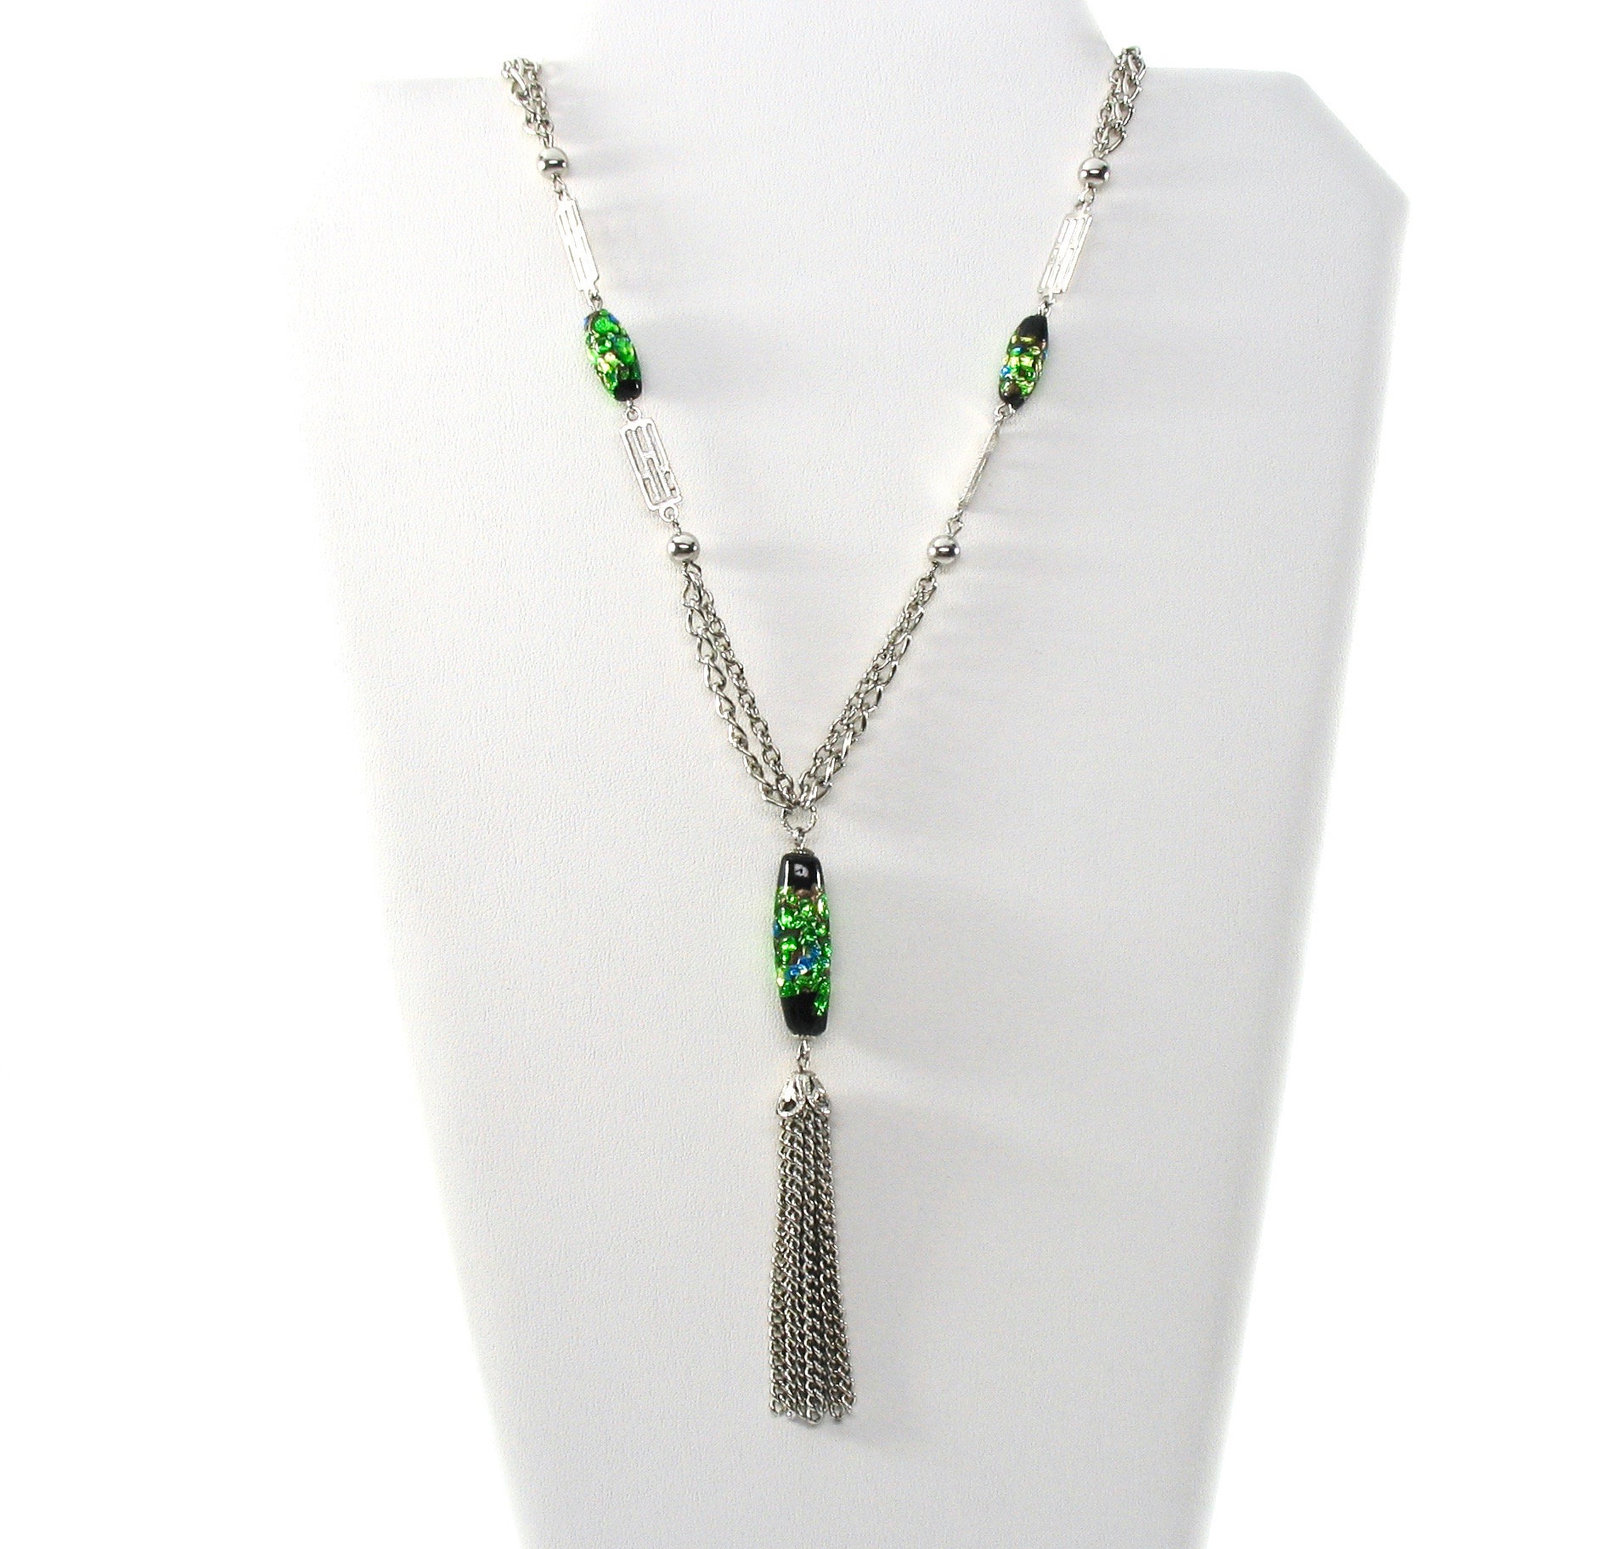 Vintage Tassle Necklace, Iridescent Beads, Green Glass Dangle Bead, Double Chain